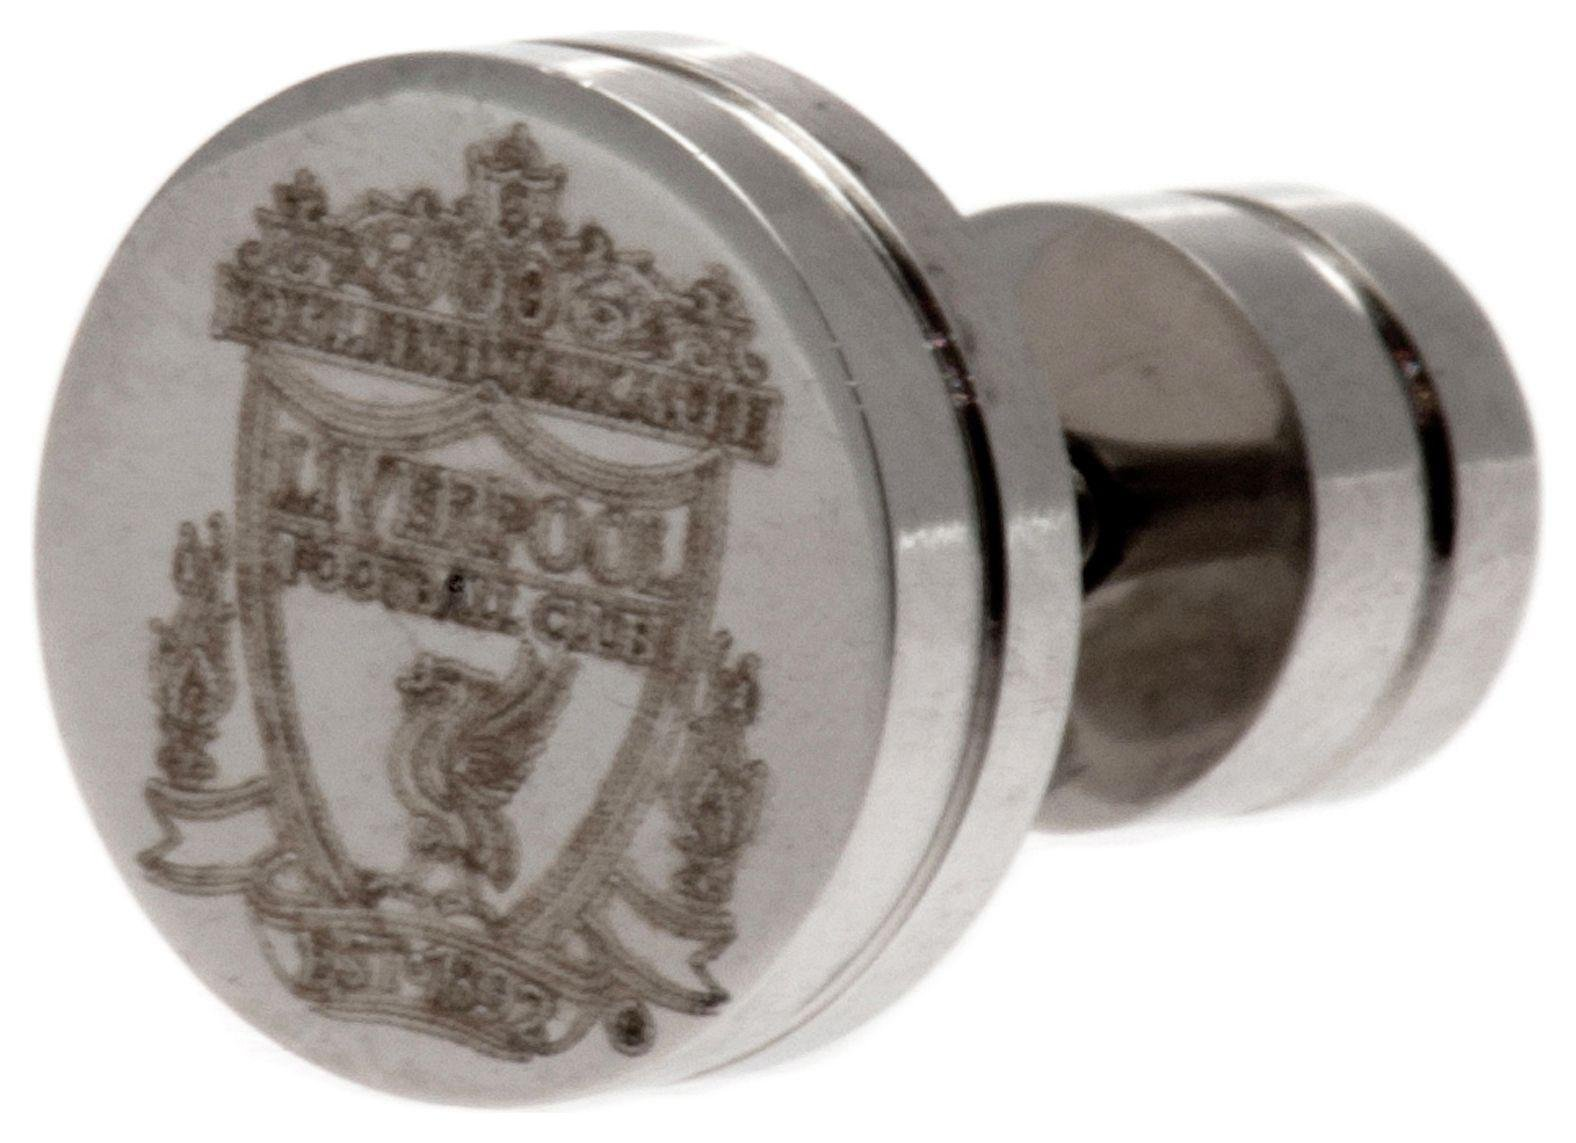 Image of Stainless Steel Liverpool Crest Stud Earring.